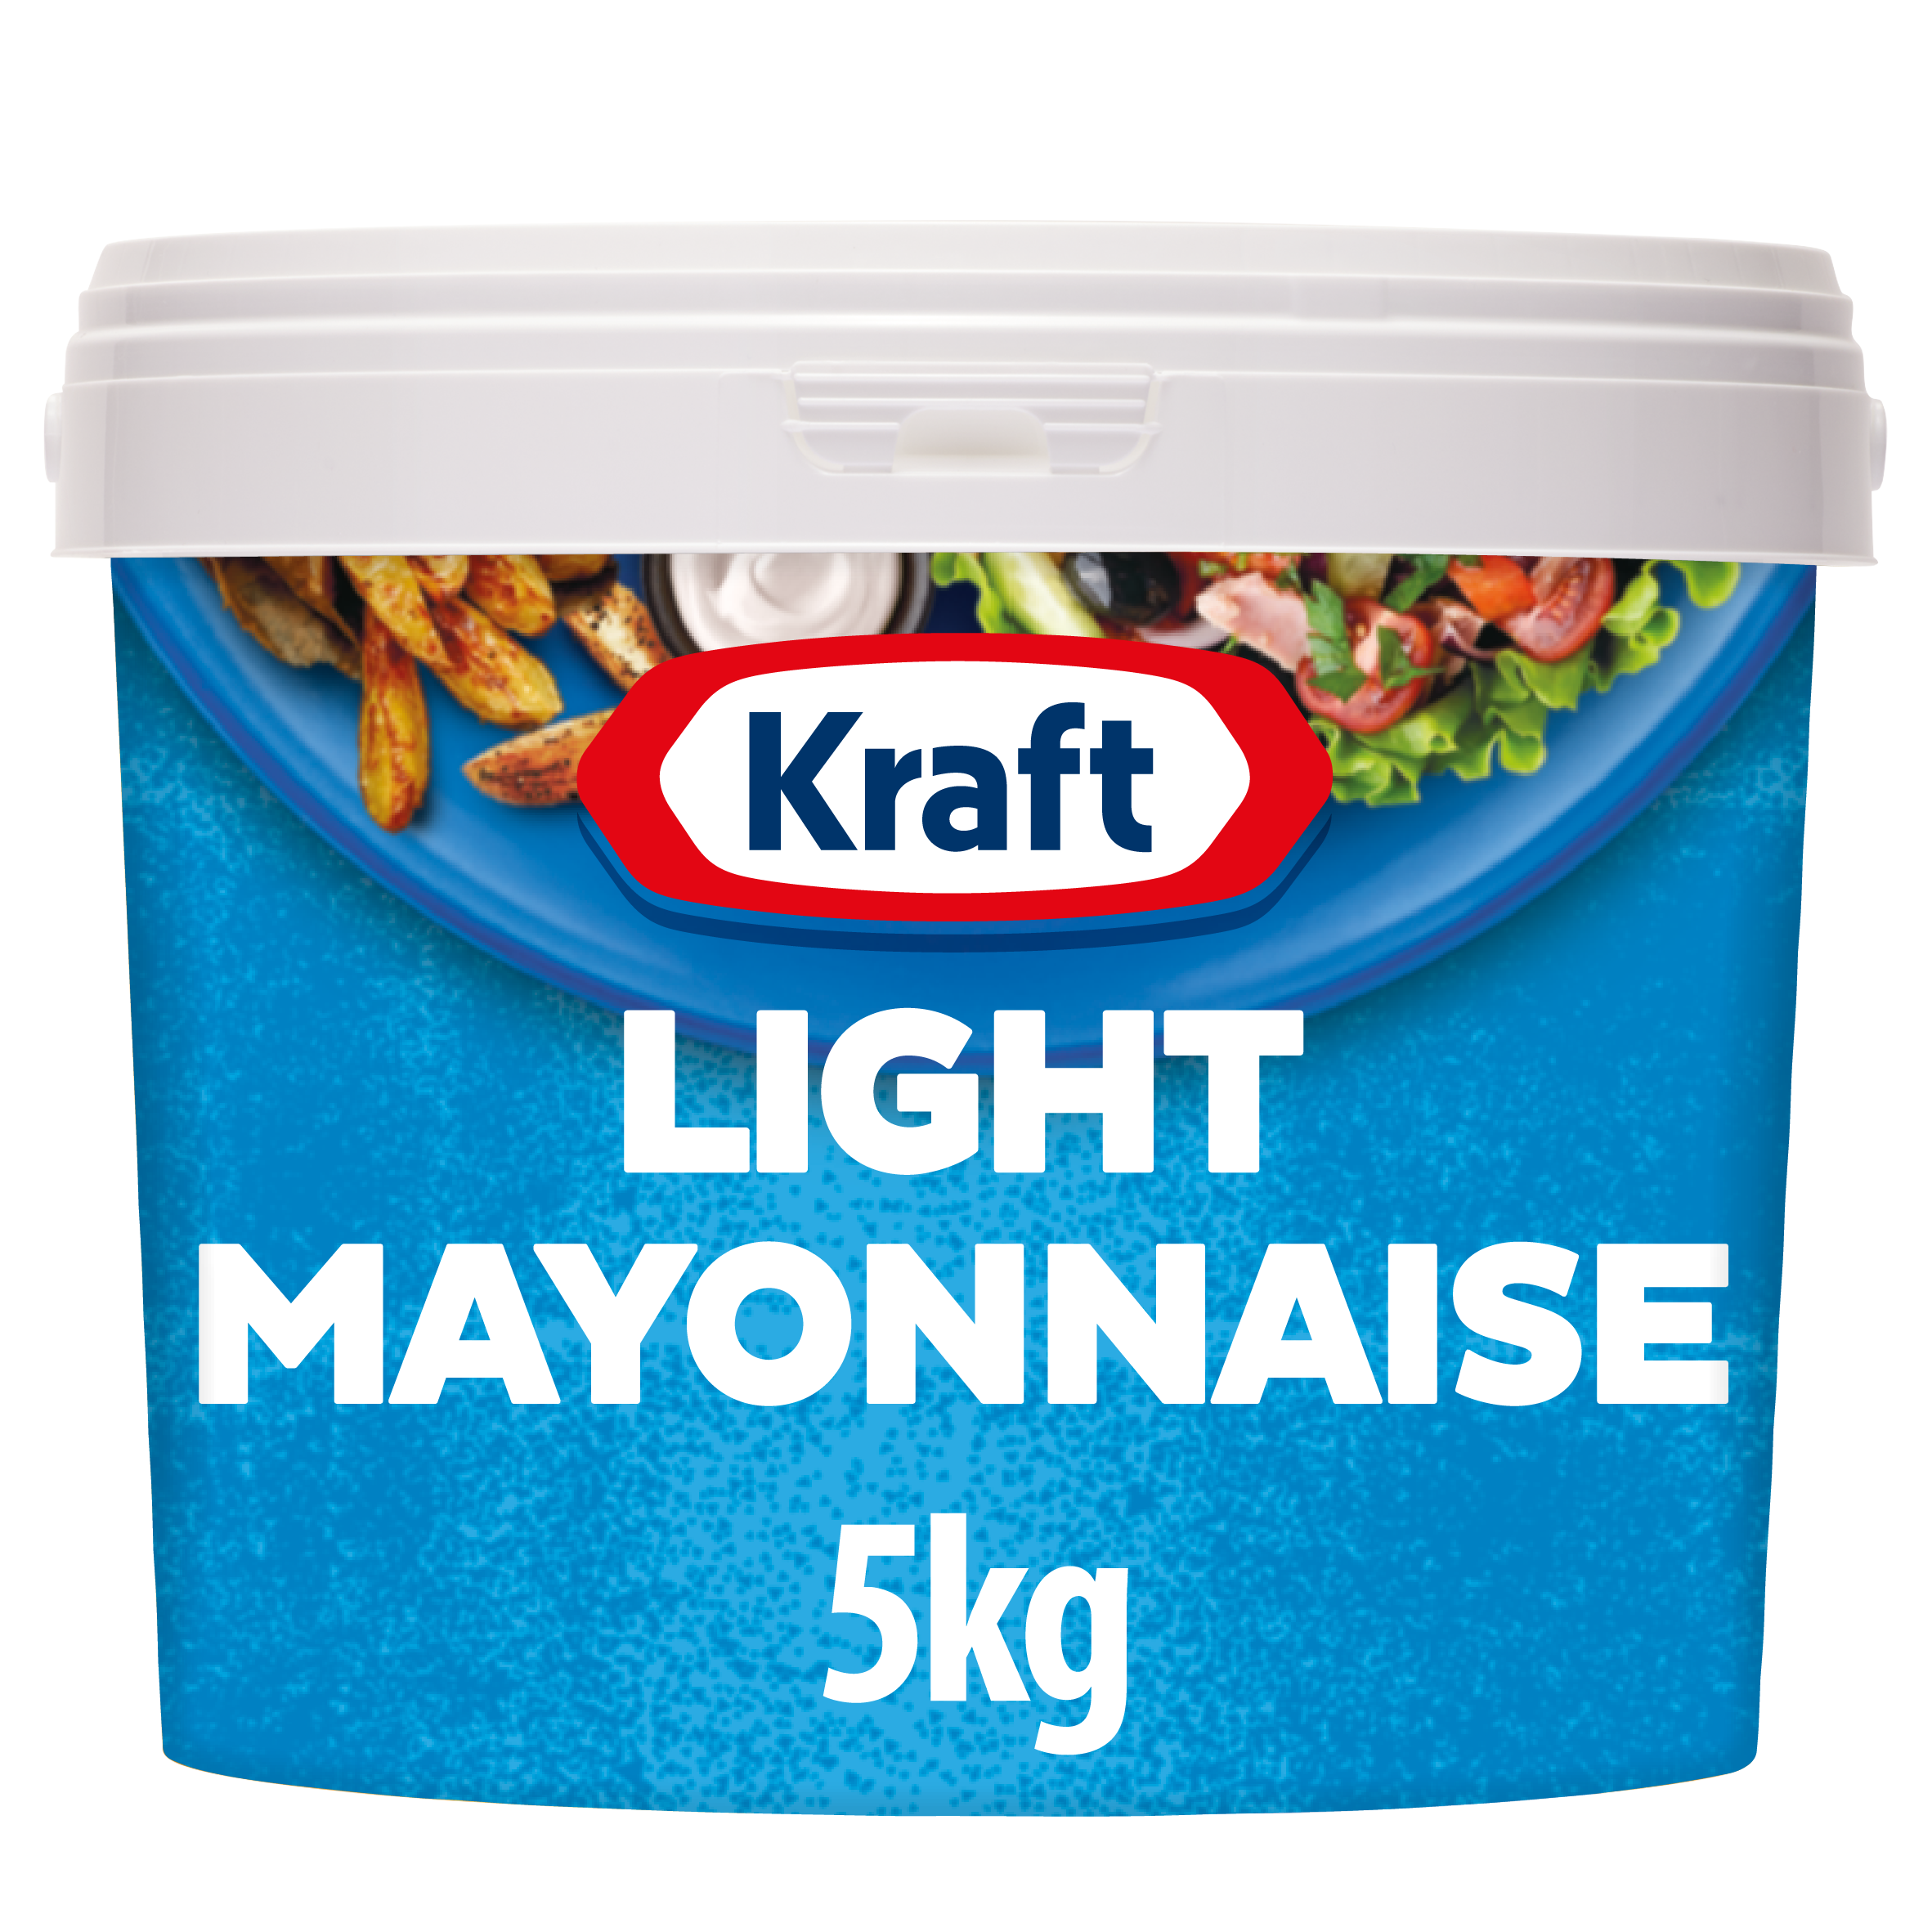 Kraft Light Mayo5L image